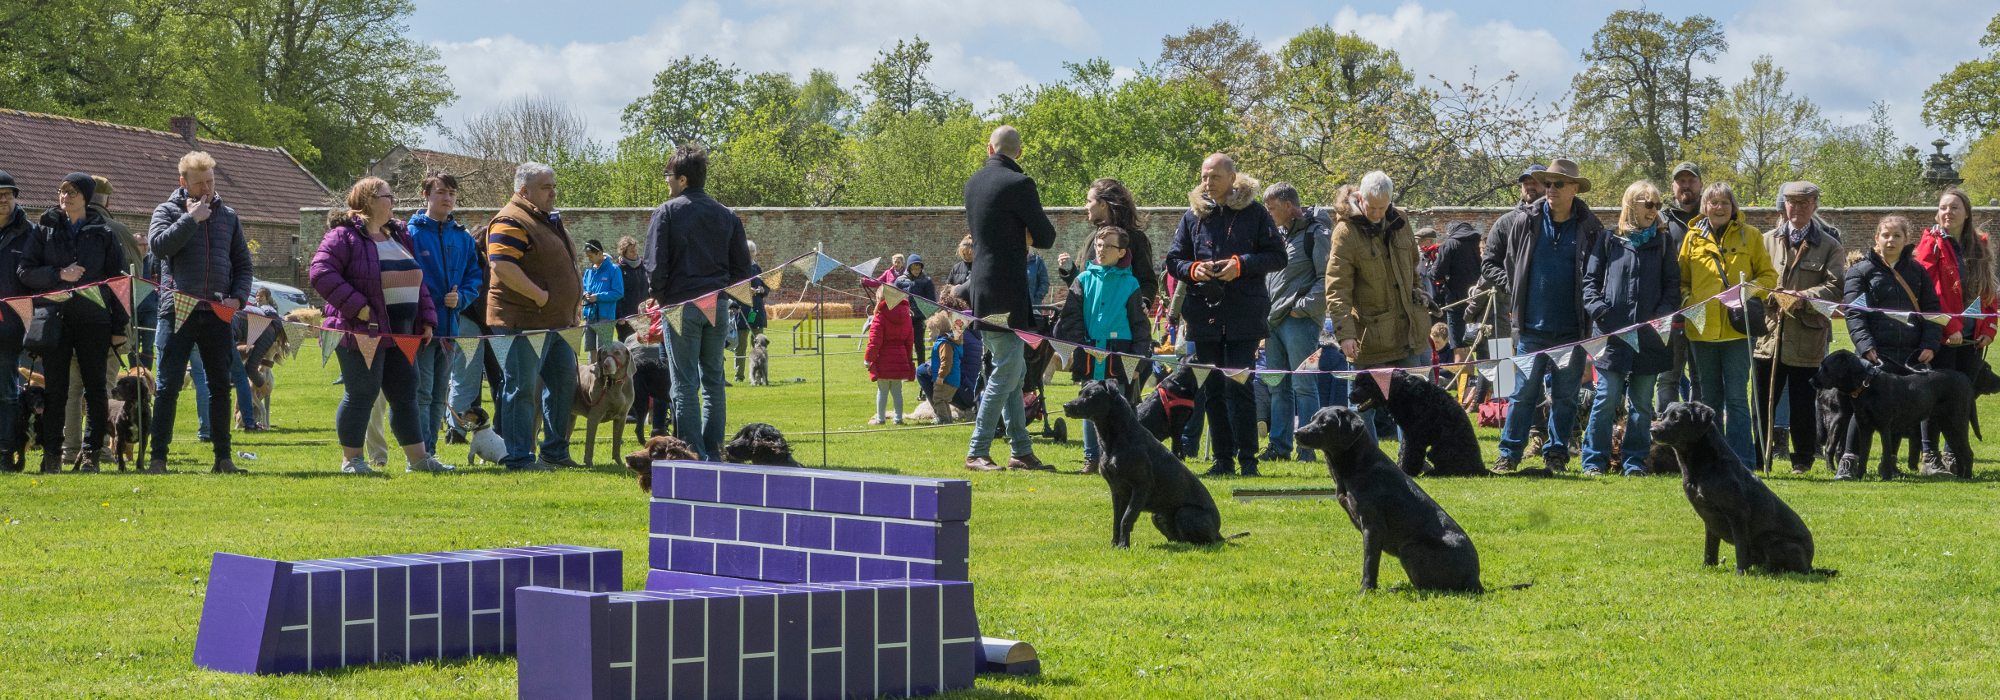 Festival of Dogs